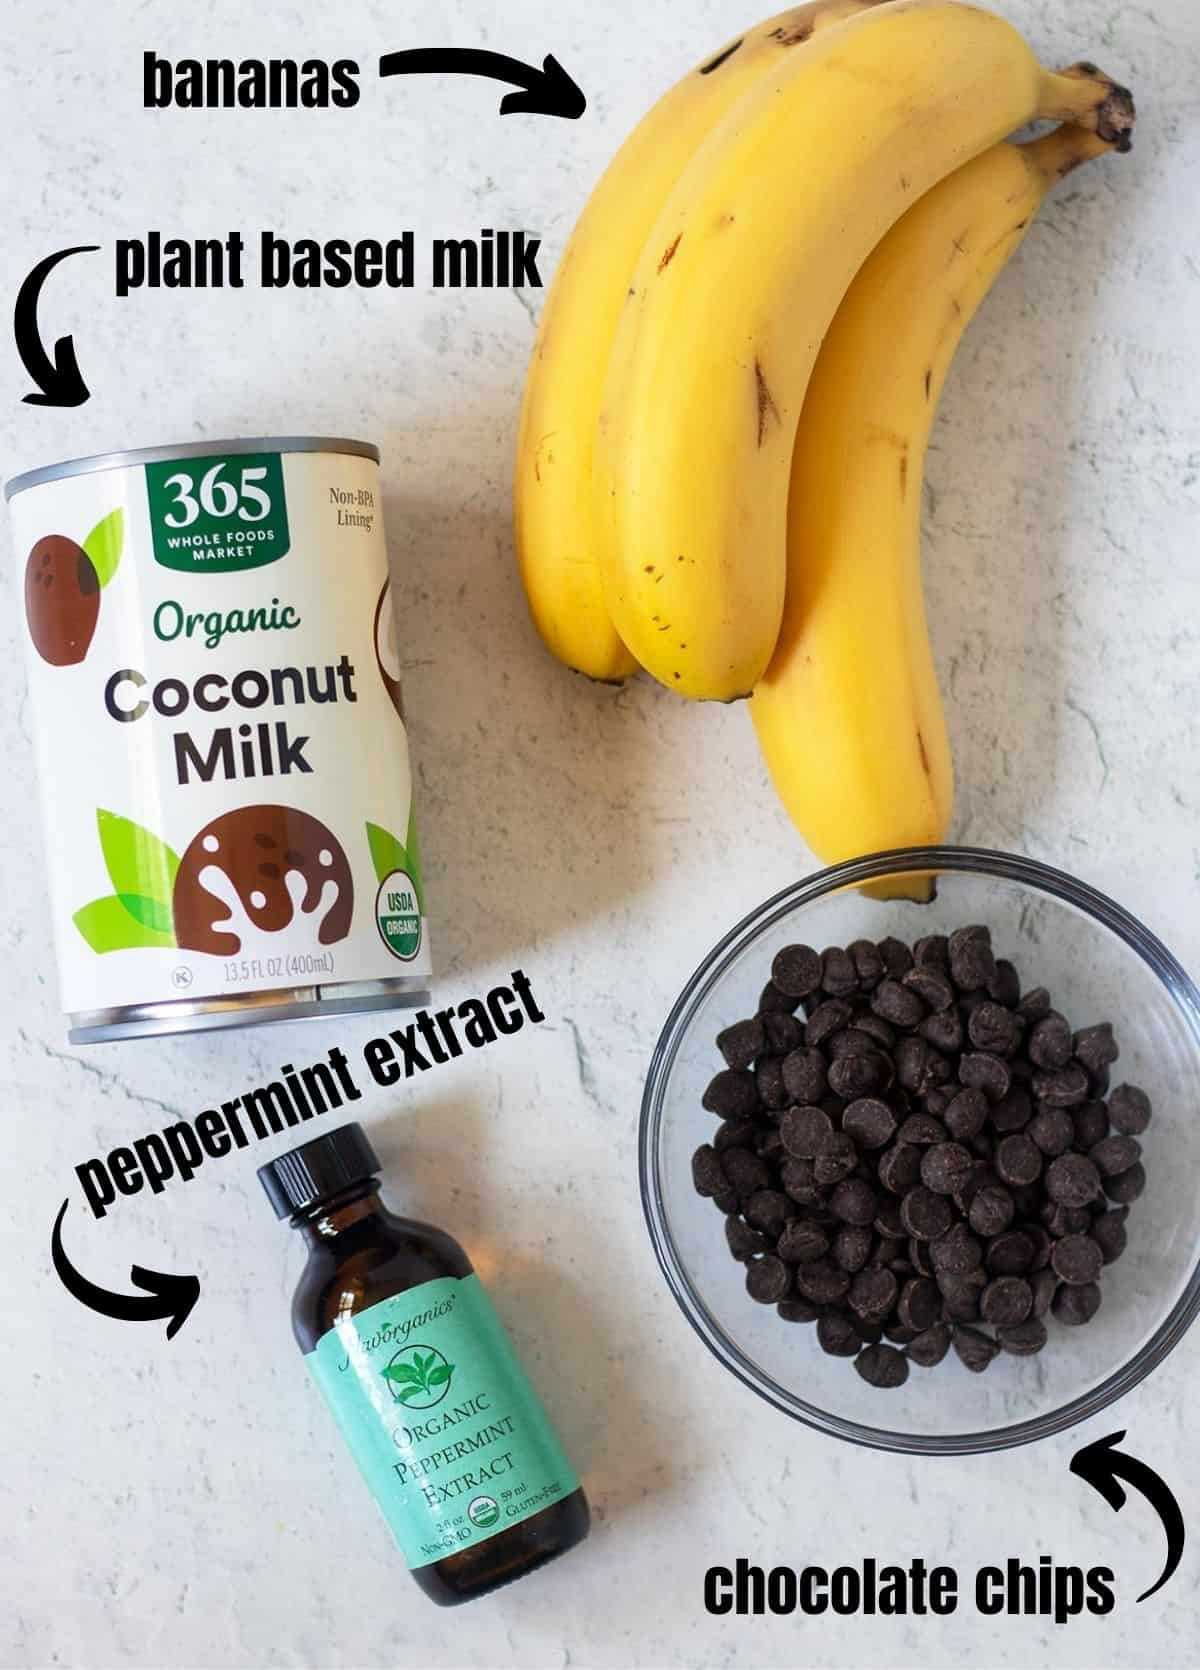 coconut milk, bananas, peppermint extract, chocolate chips